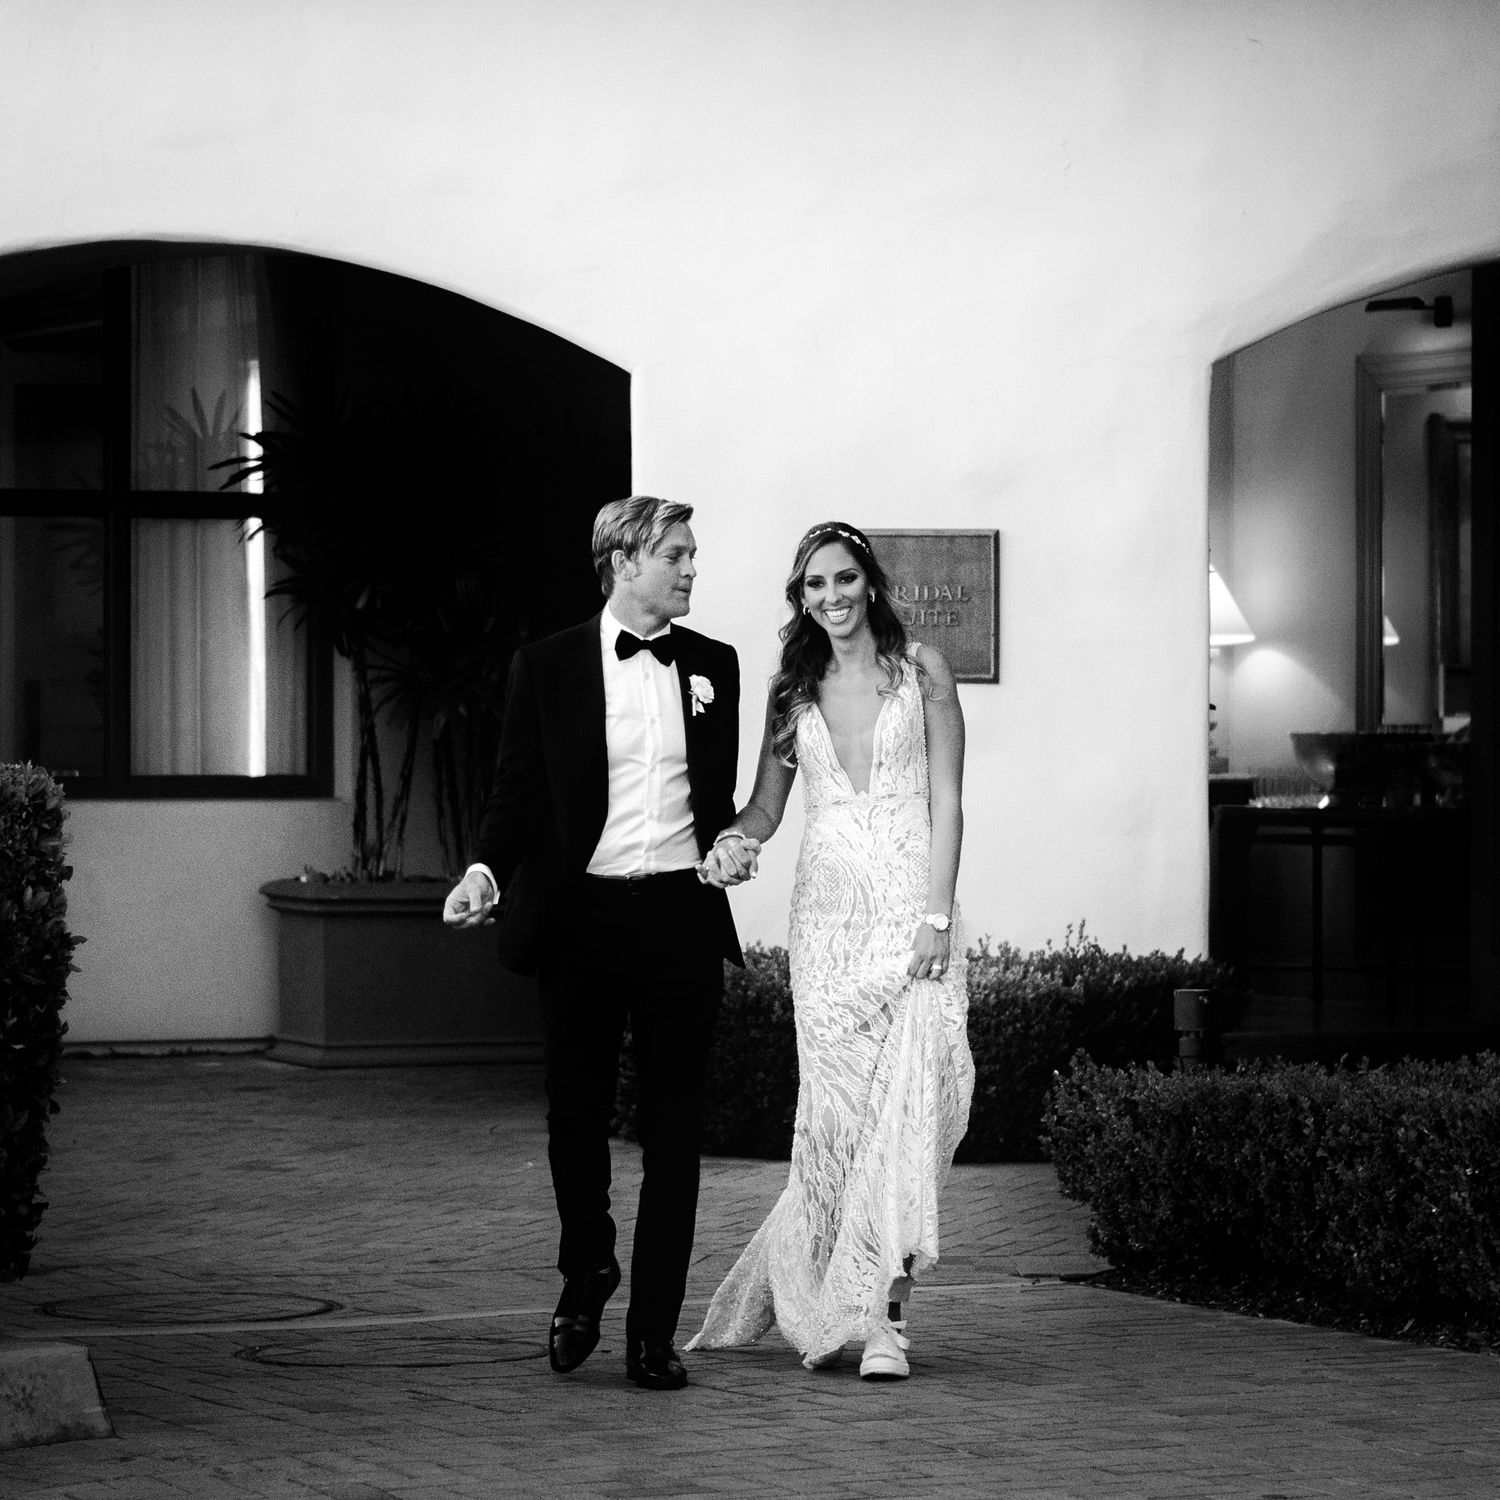 wedding-pelican-hill-newport-coast-photographer-alana-brent-abbf6073b.jpg